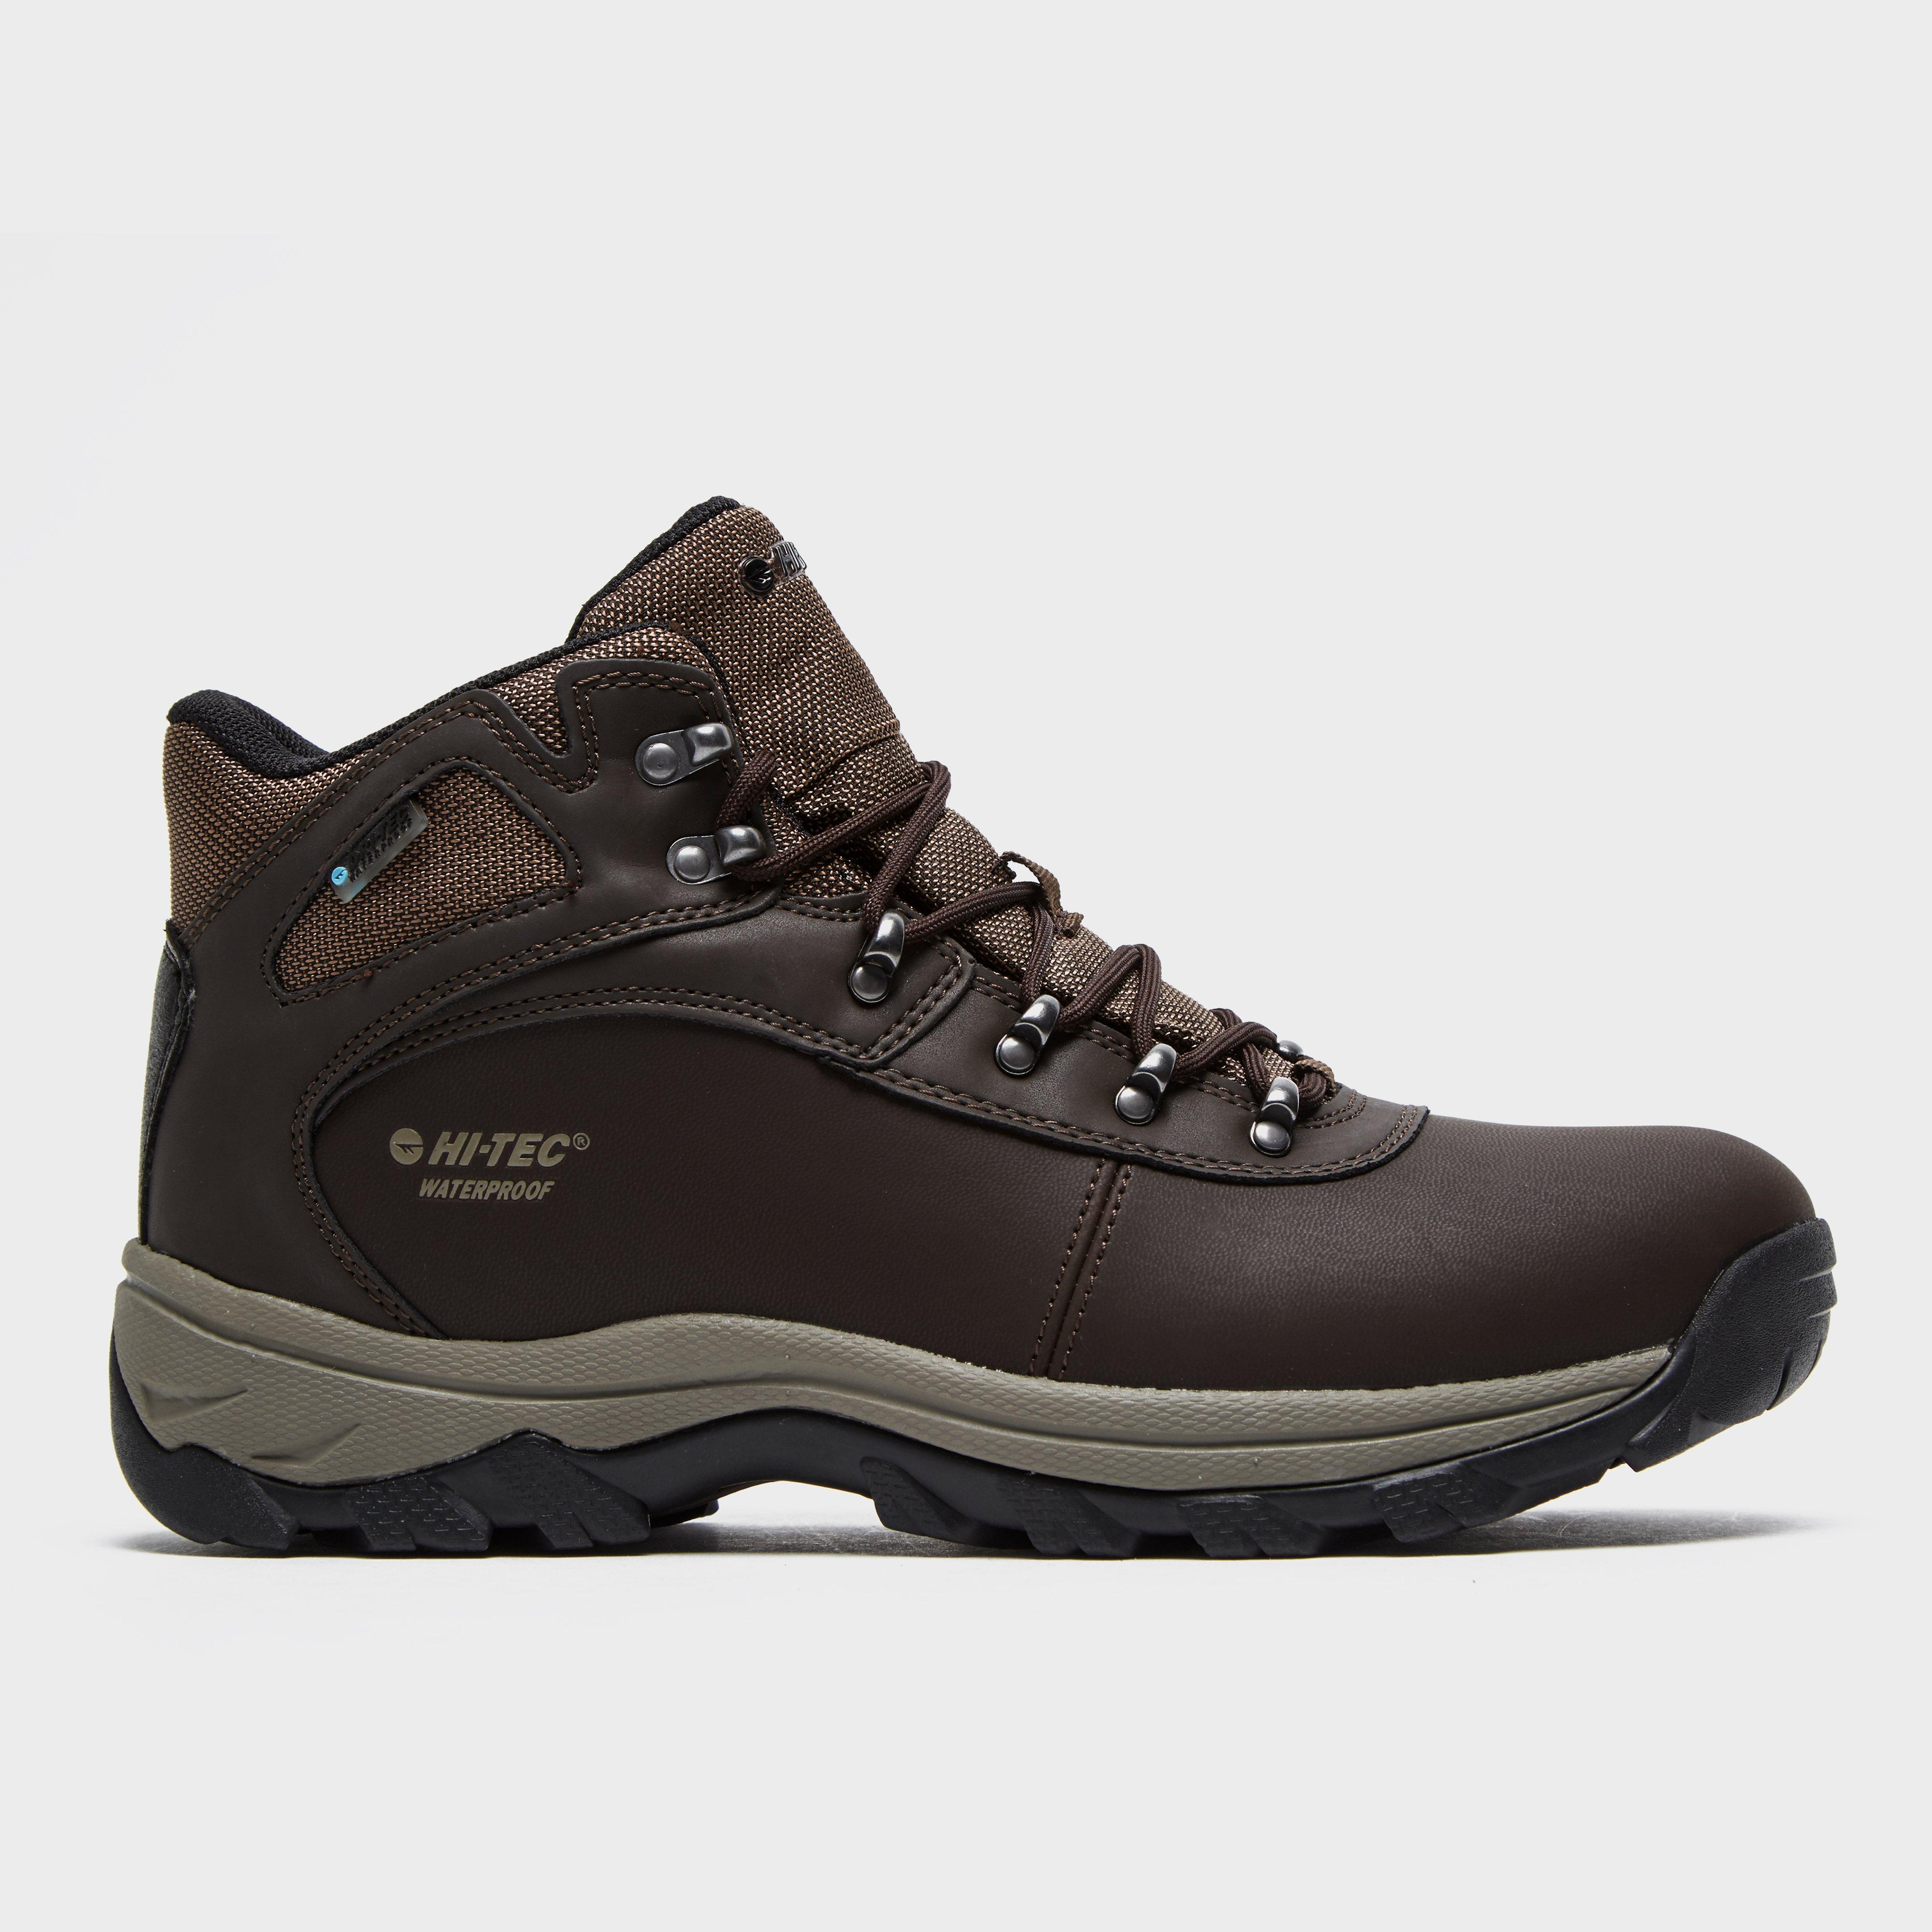 Mens Walking Boots & Hiking Boots | Millets